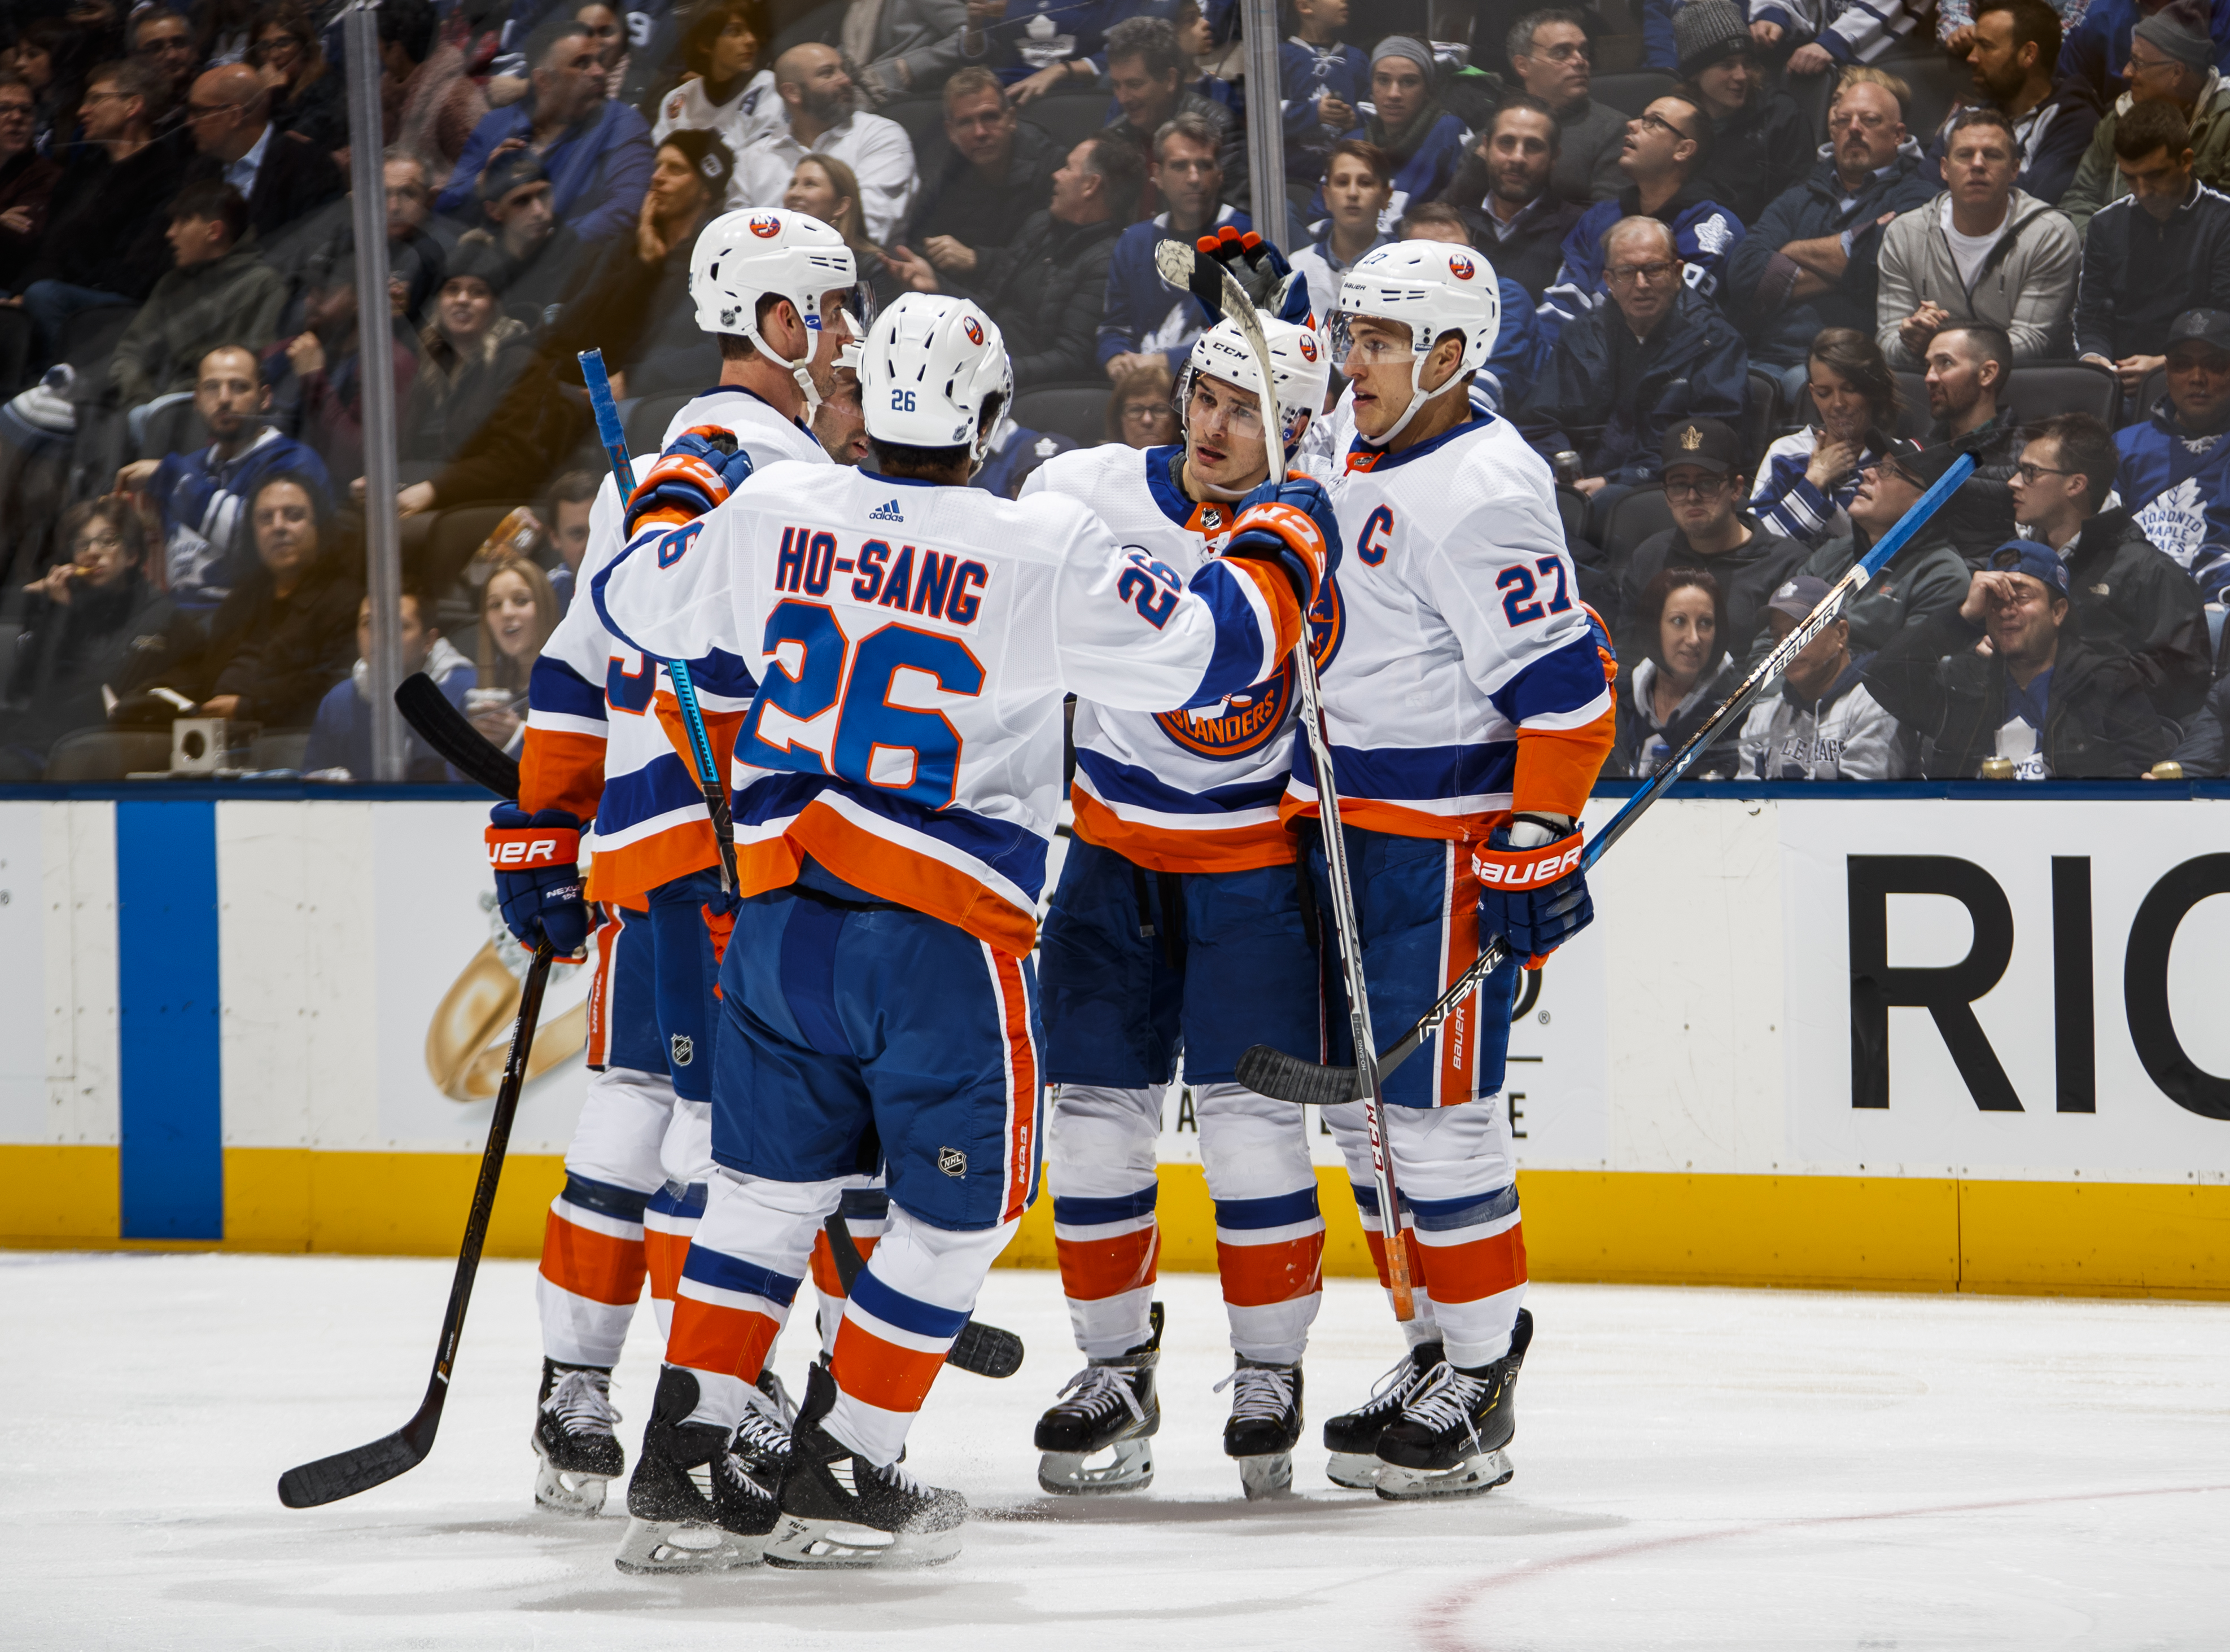 New York Islanders Schedule, Roster, News, and Rumors